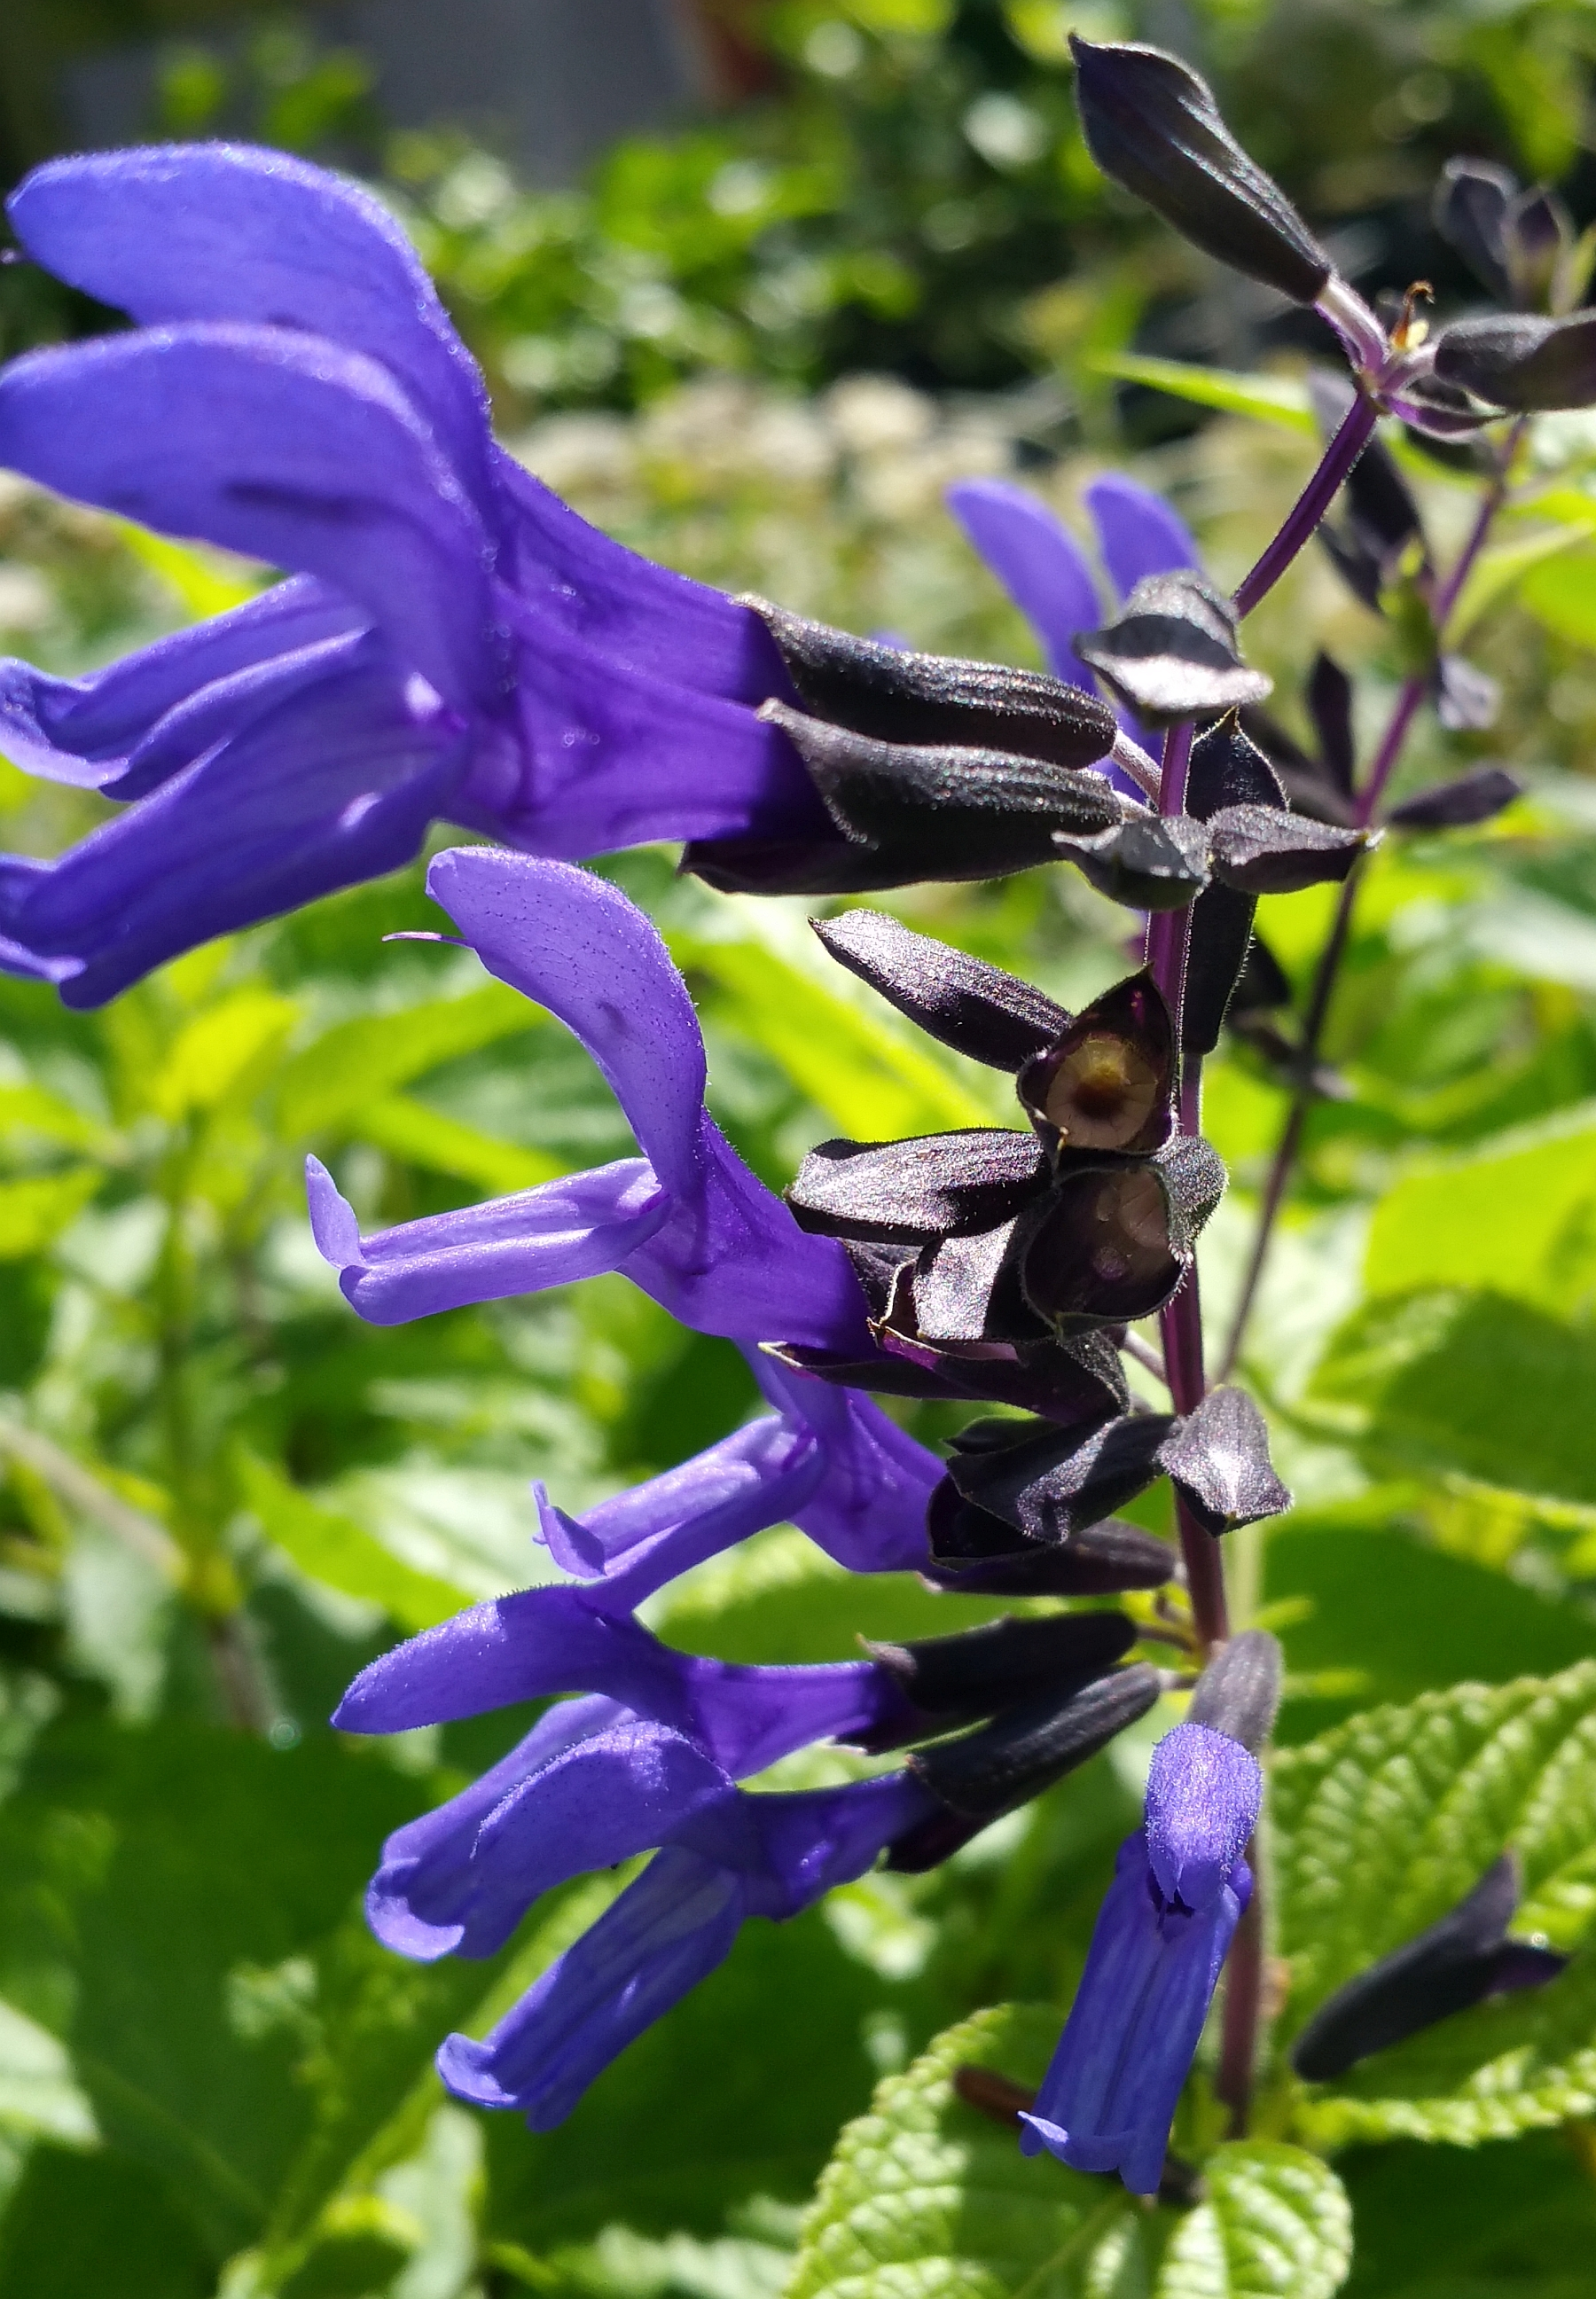 Black and blue salvia sage live perennial plant unusual sapphire black and blue salvia sage live perennial plant unusual sapphire colored flowers attract hummingbirds starter size larger image mightylinksfo